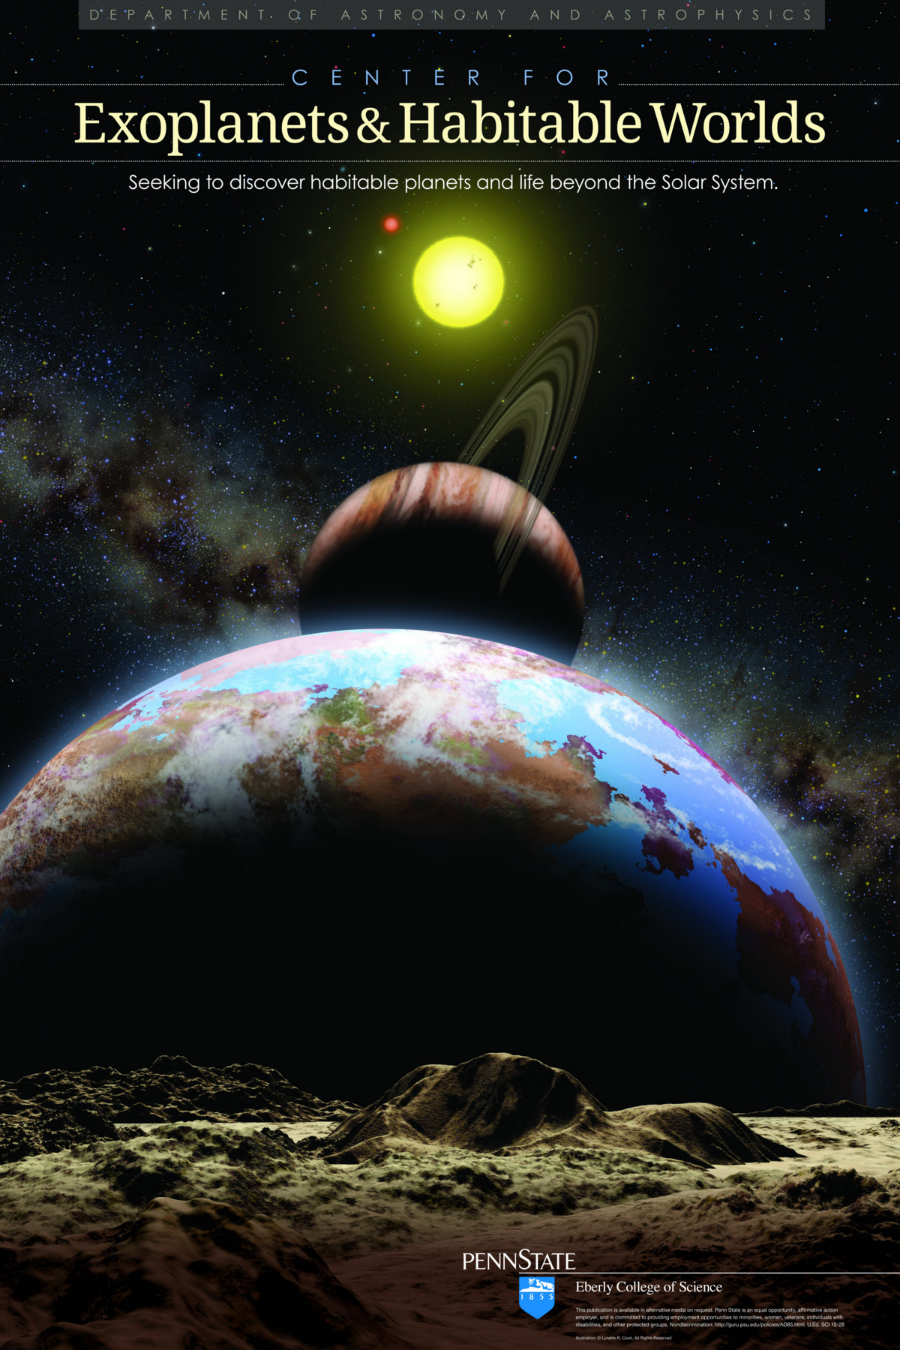 Center for Exoplanets and Habitable Worlds